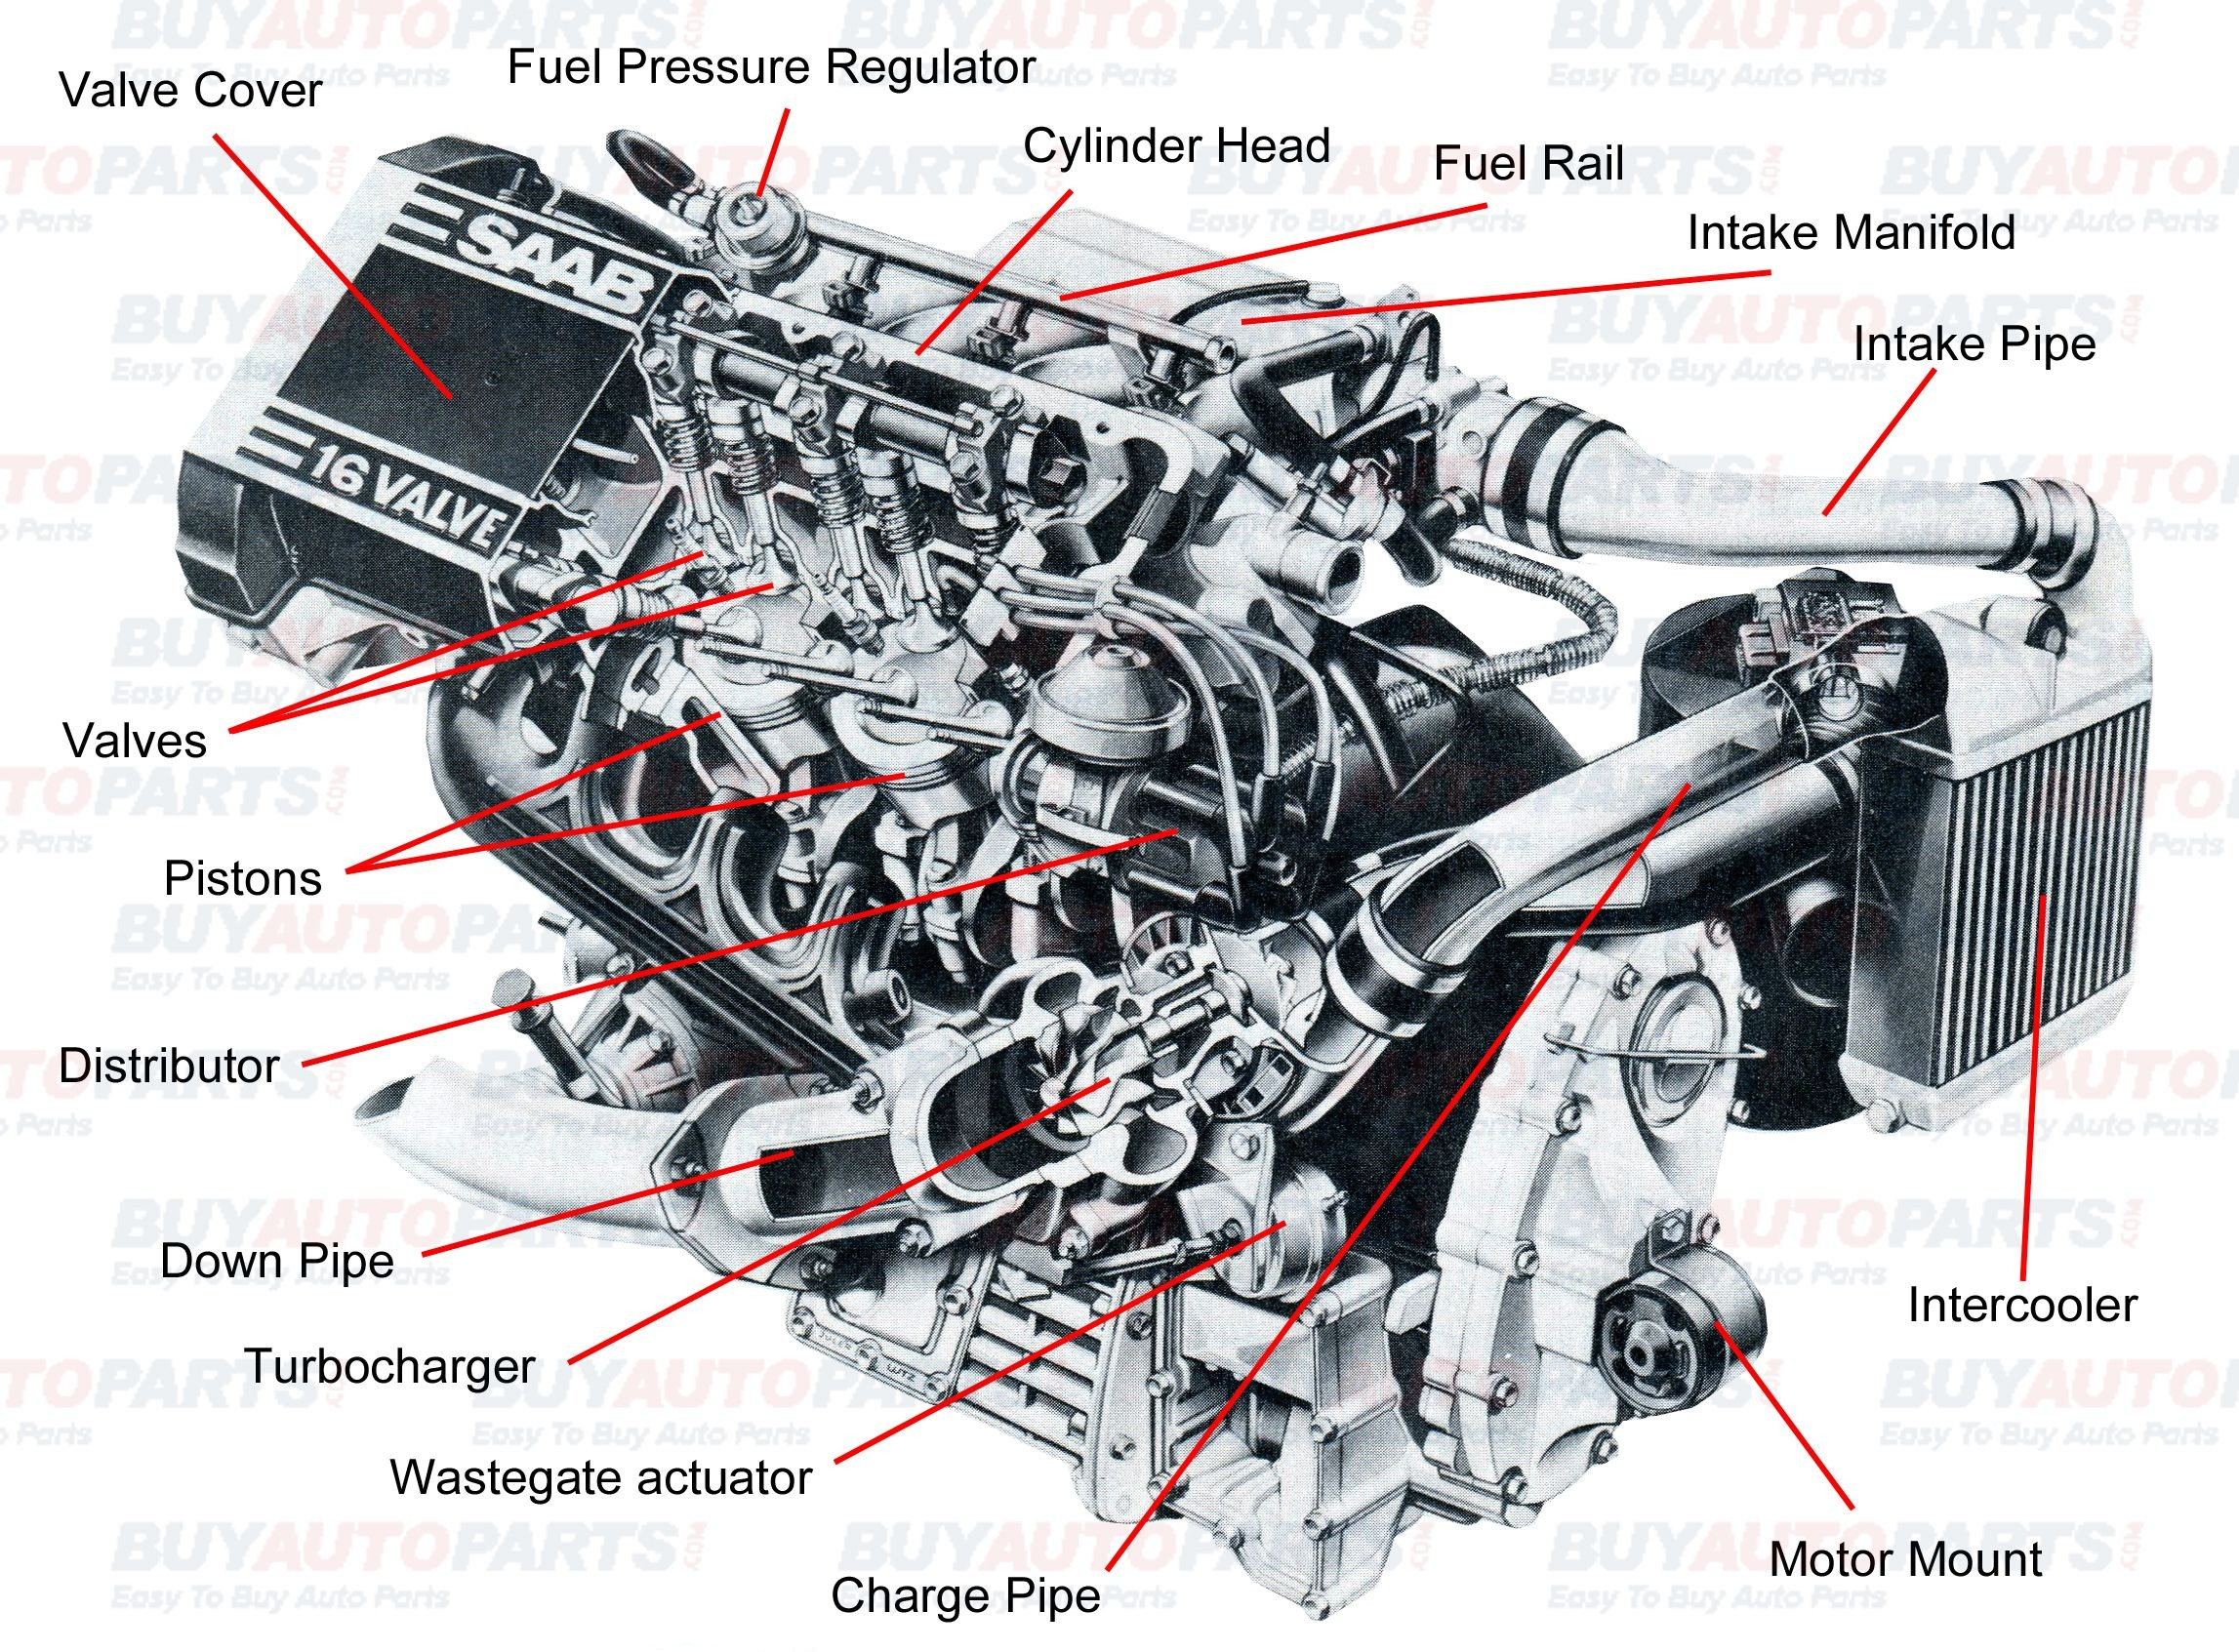 Car Alternator Diagram Pin by Jimmiejanet Testellamwfz On What Does An Engine with Turbo Of Car Alternator Diagram